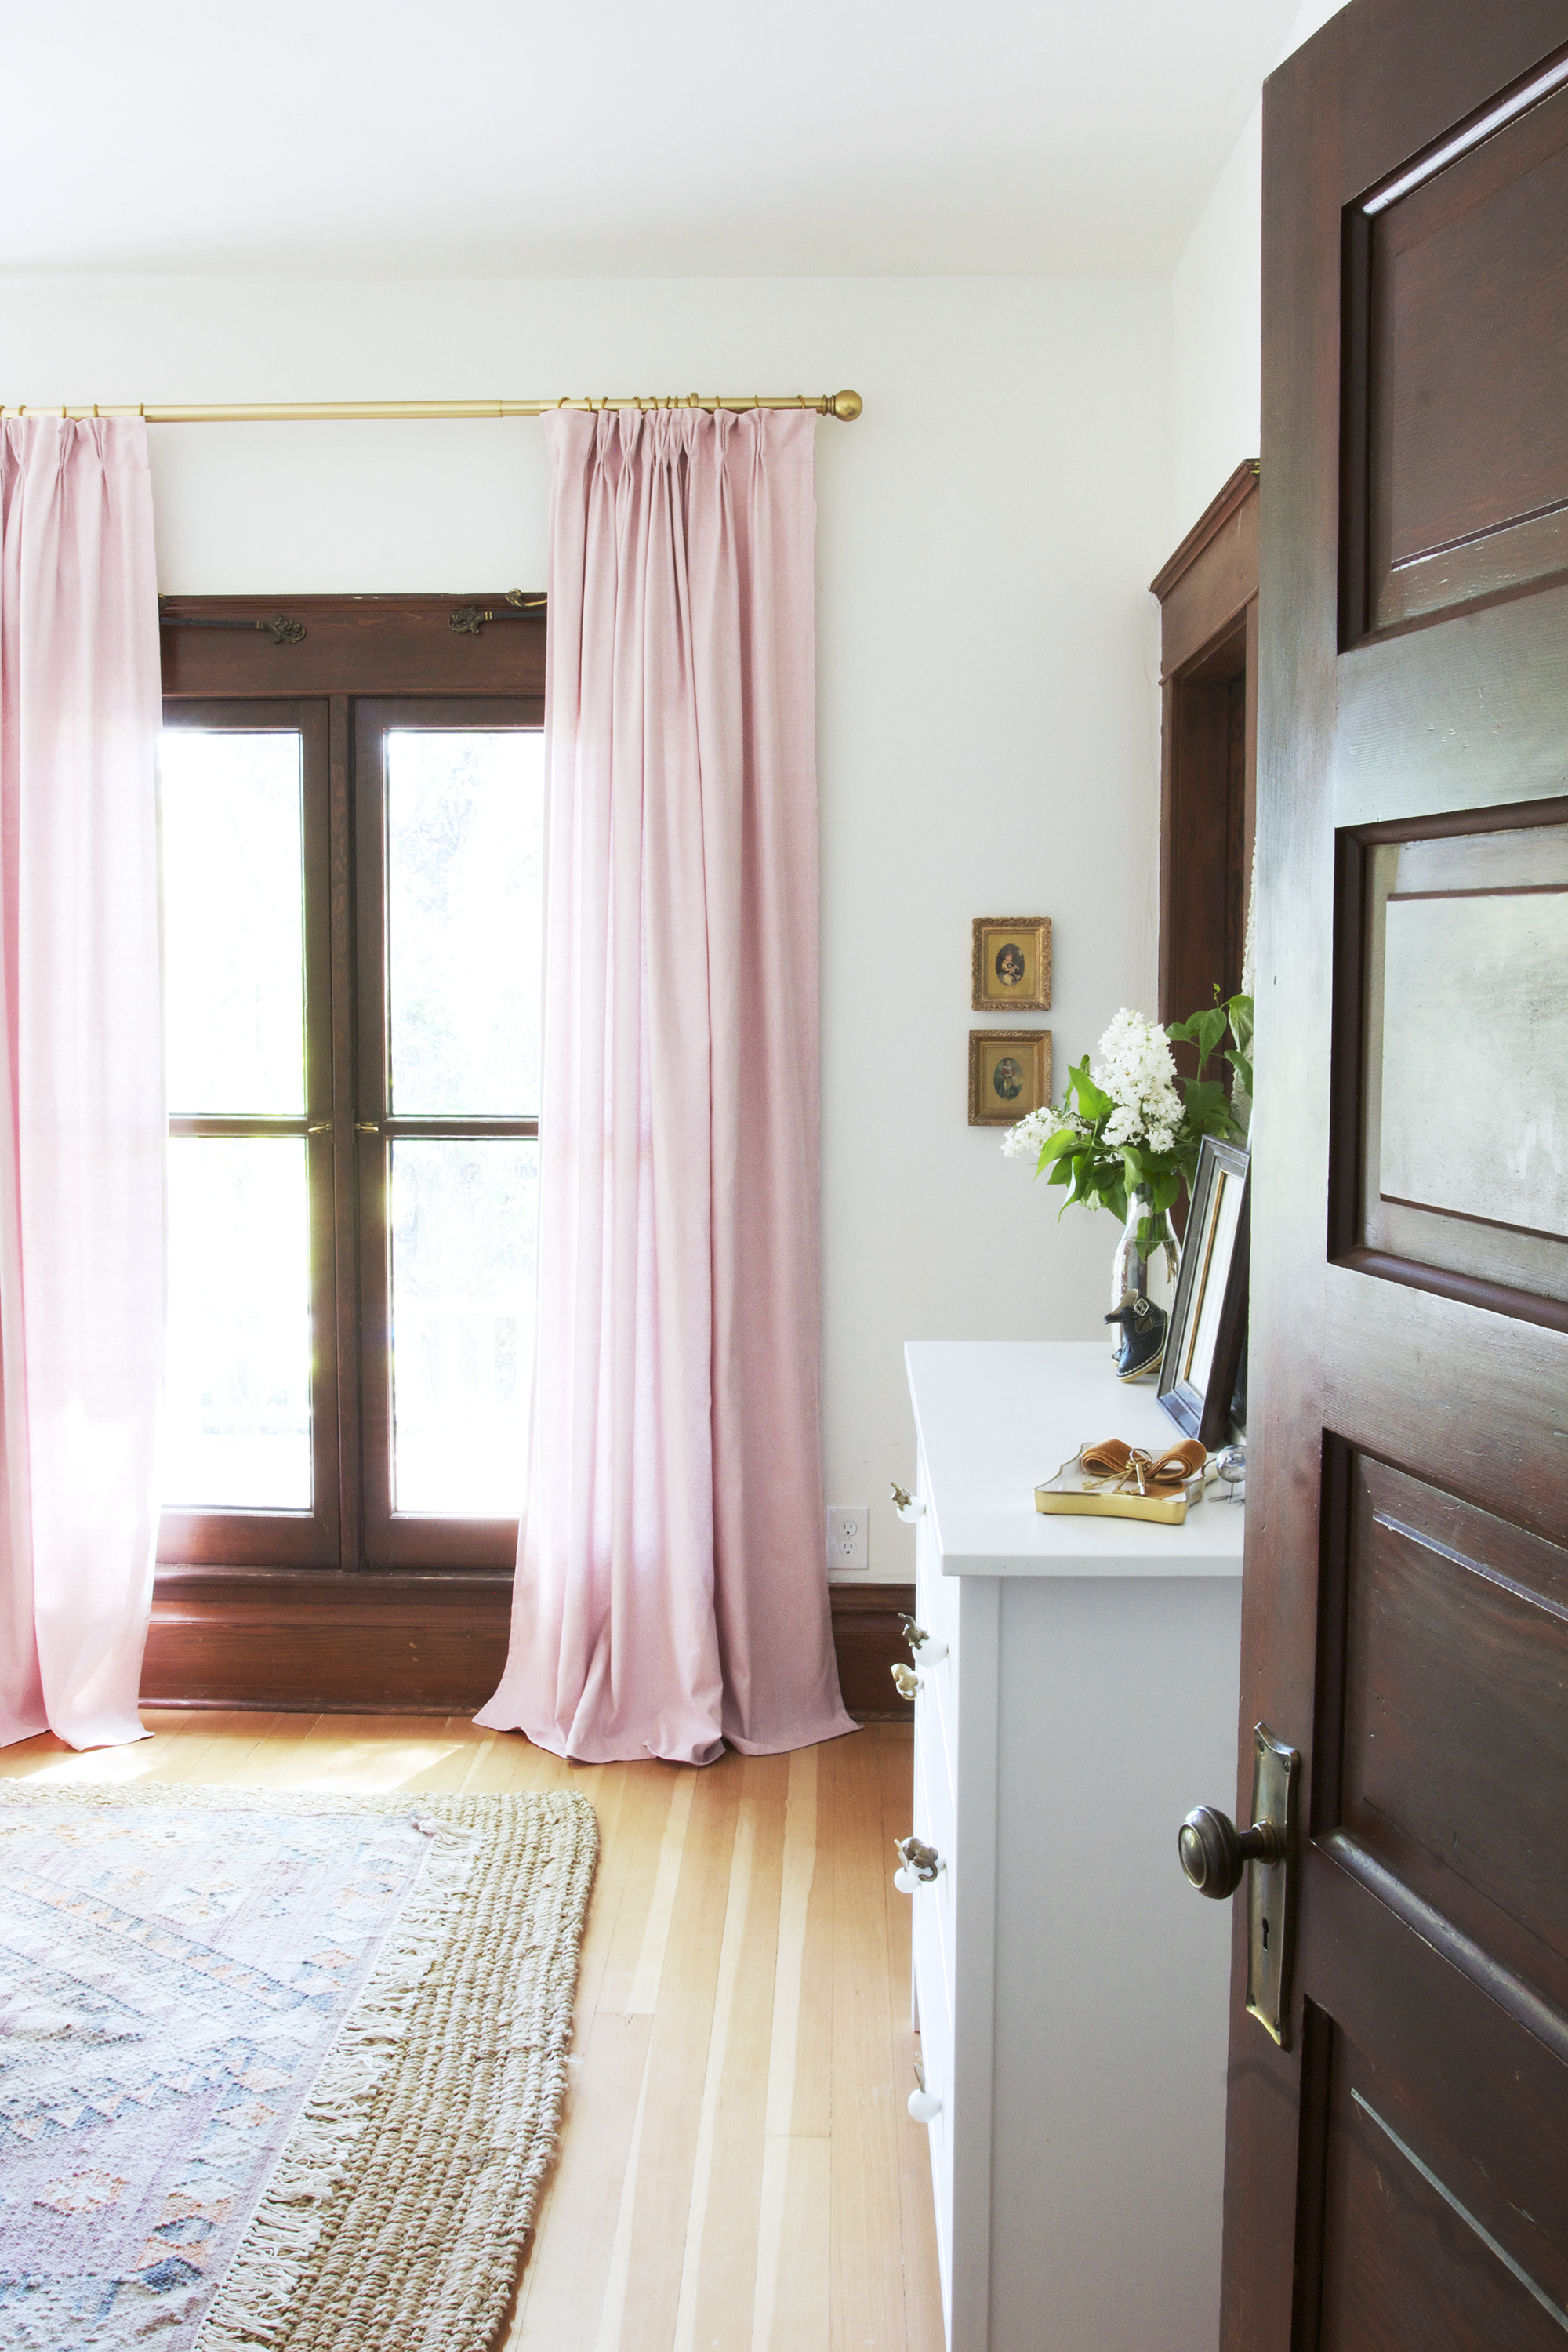 Diy Pinch Pleat Curtains How To Make Budget Ikea Curtains Look Like A Million Bucks The Grit And Polish